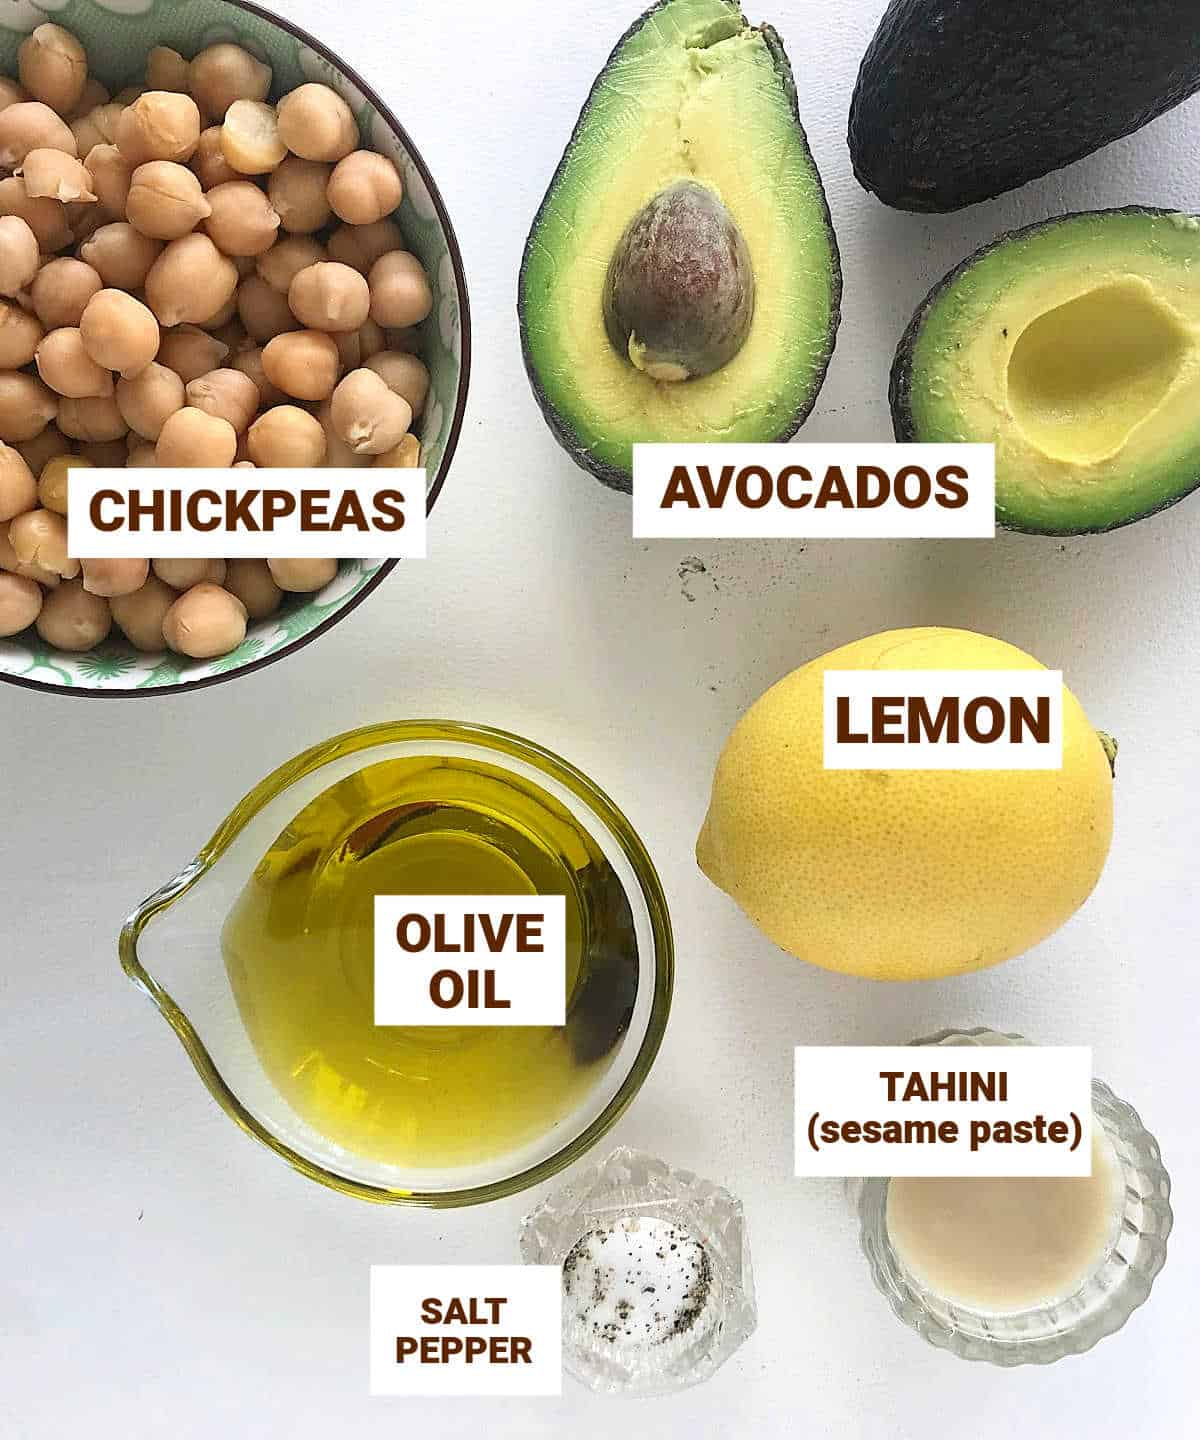 Ingredients for avocado hummus , in bowls on white surface, including lemon, chickpeas, oil, tahini